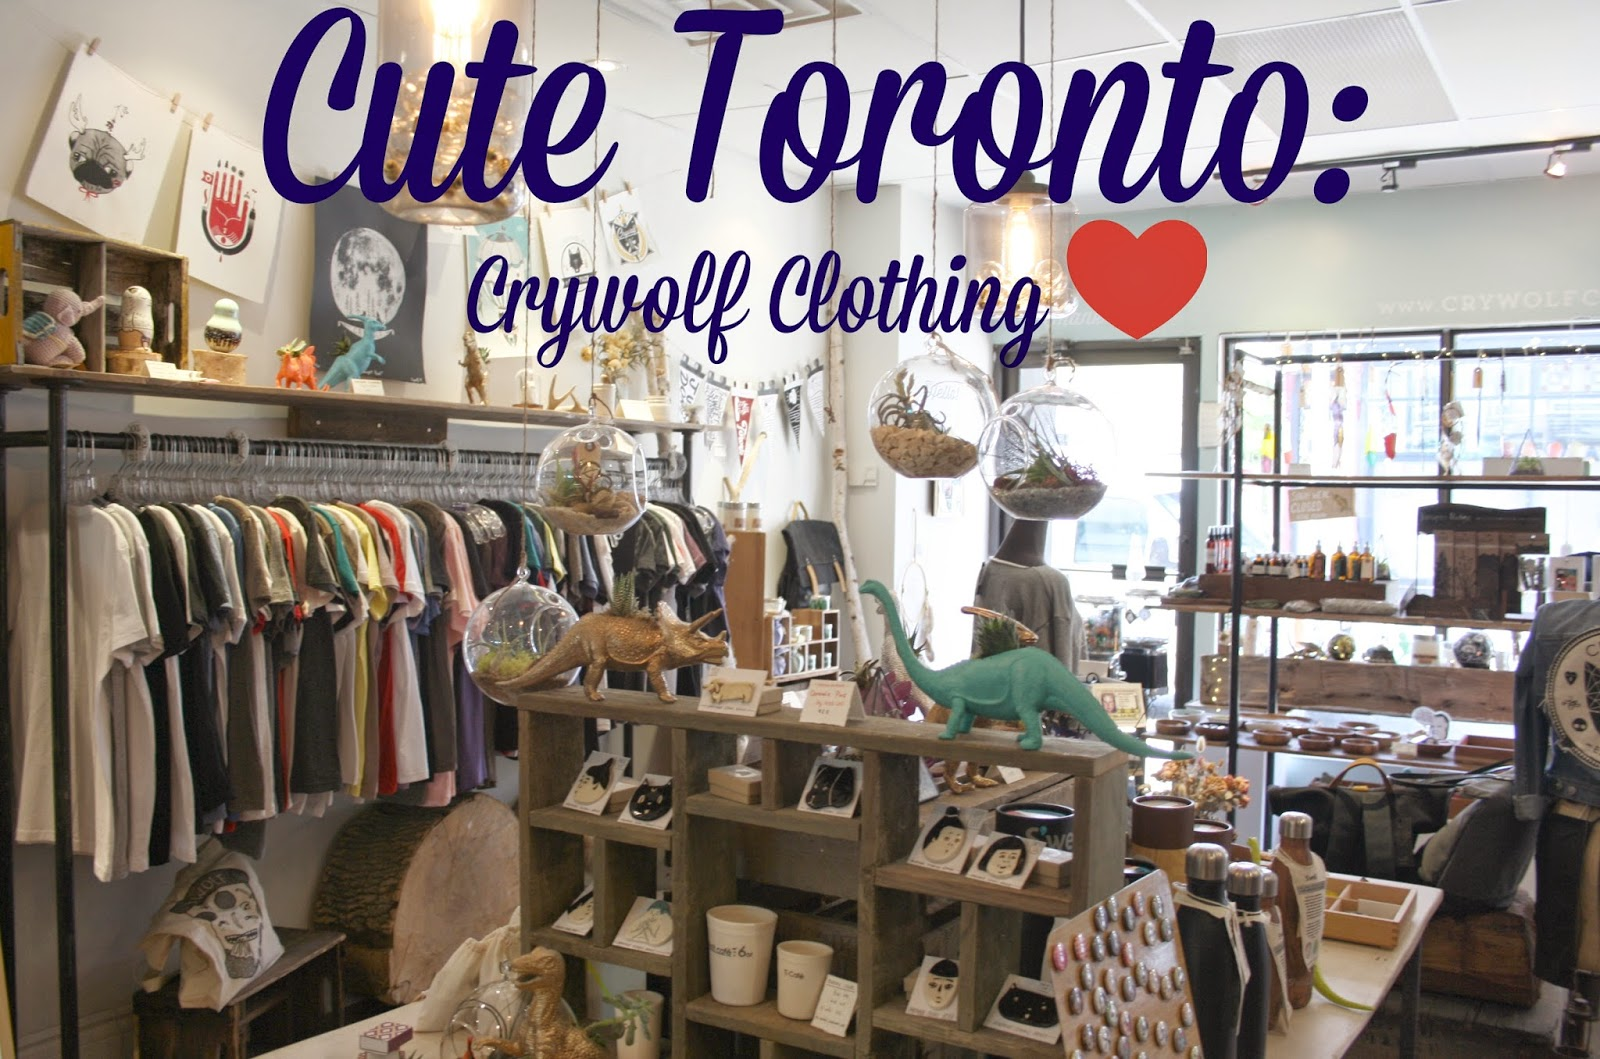 hey jules: Cute Toronto - Crywolf Clothing